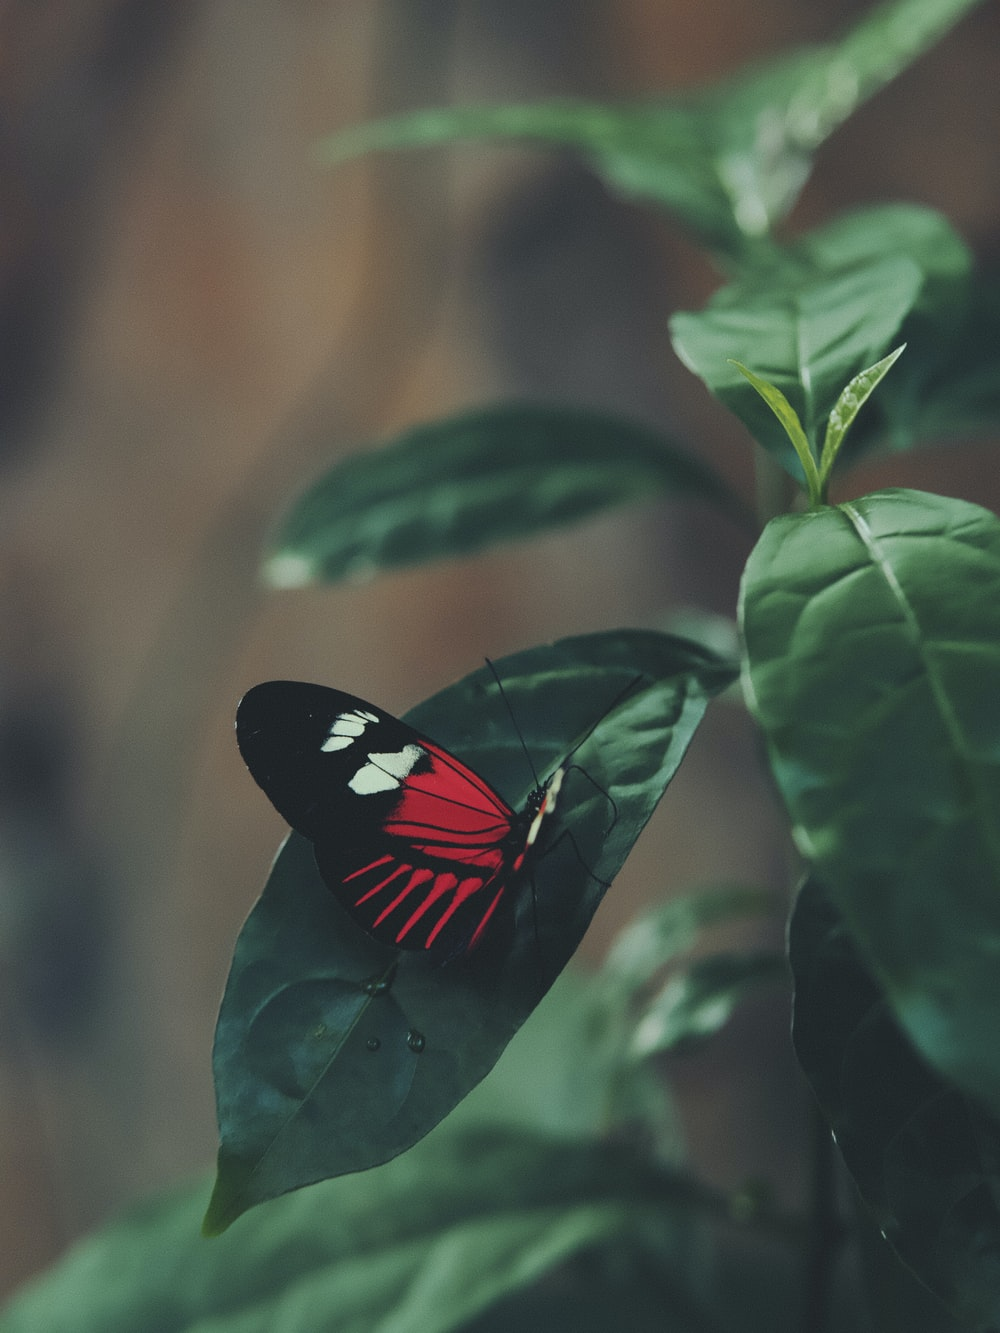 black and red butterfly perched on green leaf